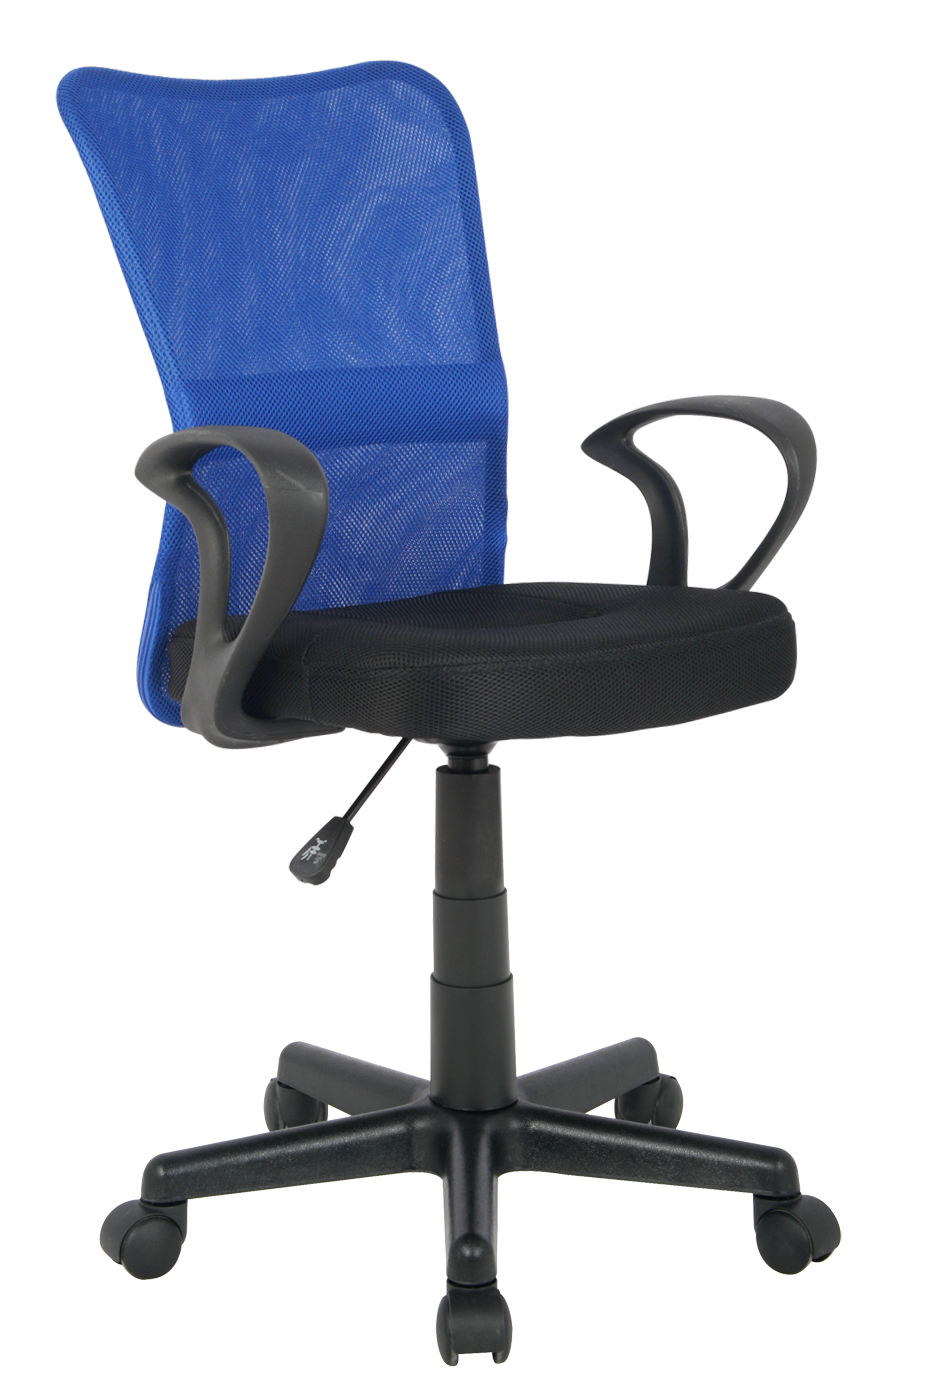 SIXBROS OFFICE SWIVEL CHAIR DIFFERENT COLOURS H298F  eBay